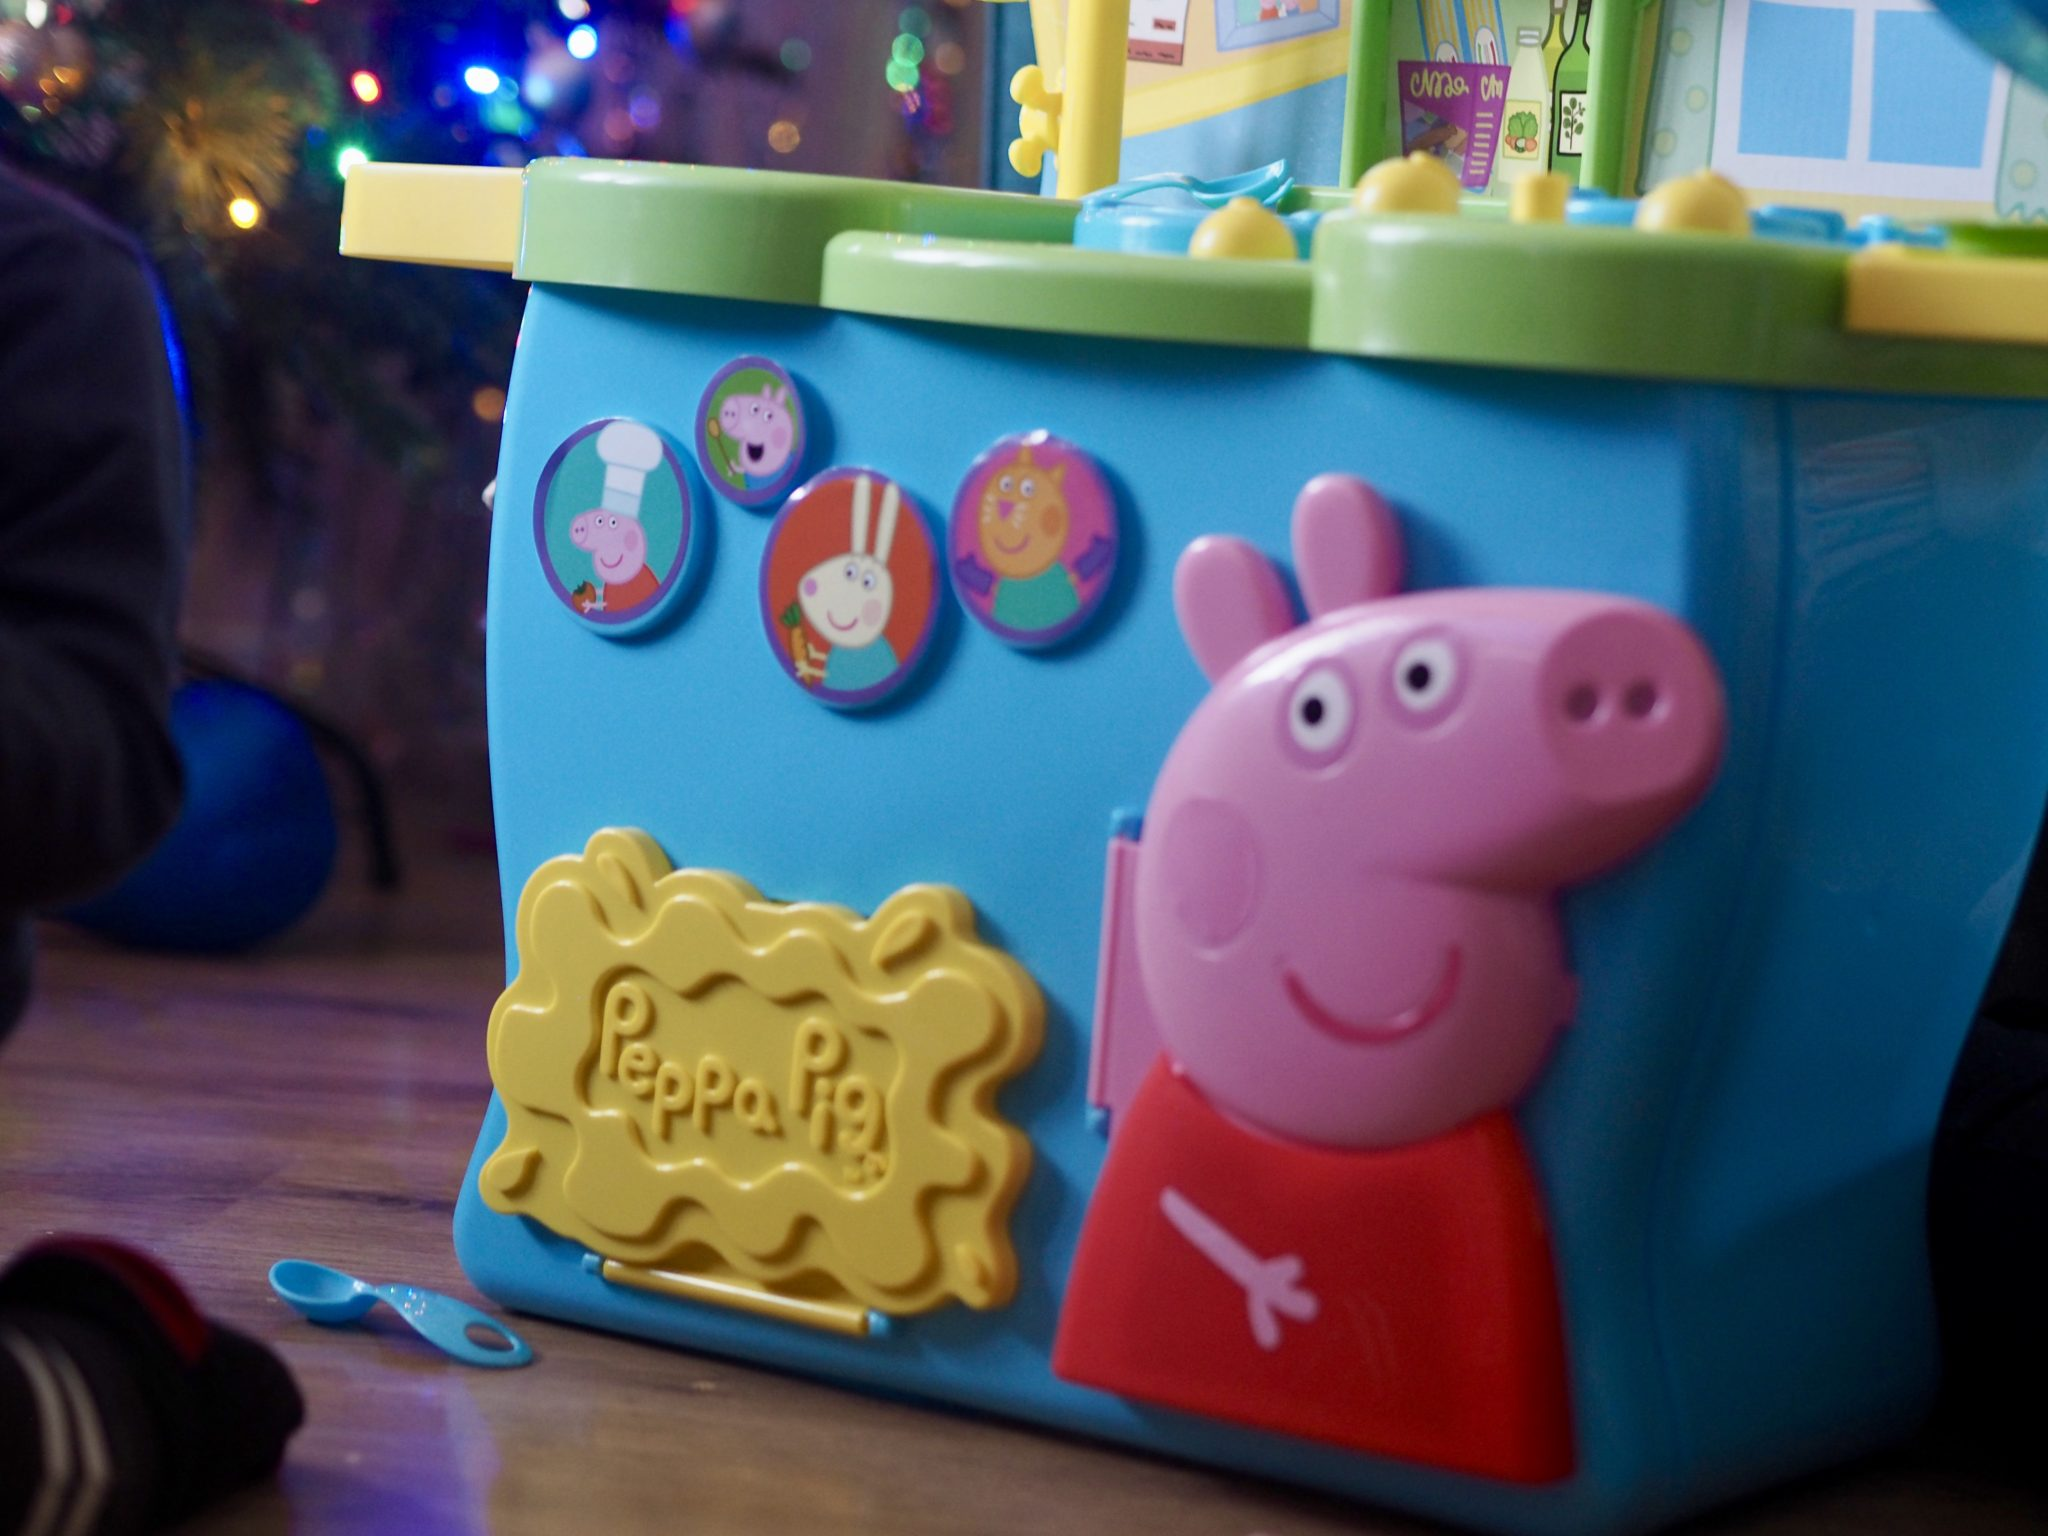 Peppa Pig Kitchen review - pretty big butterflies